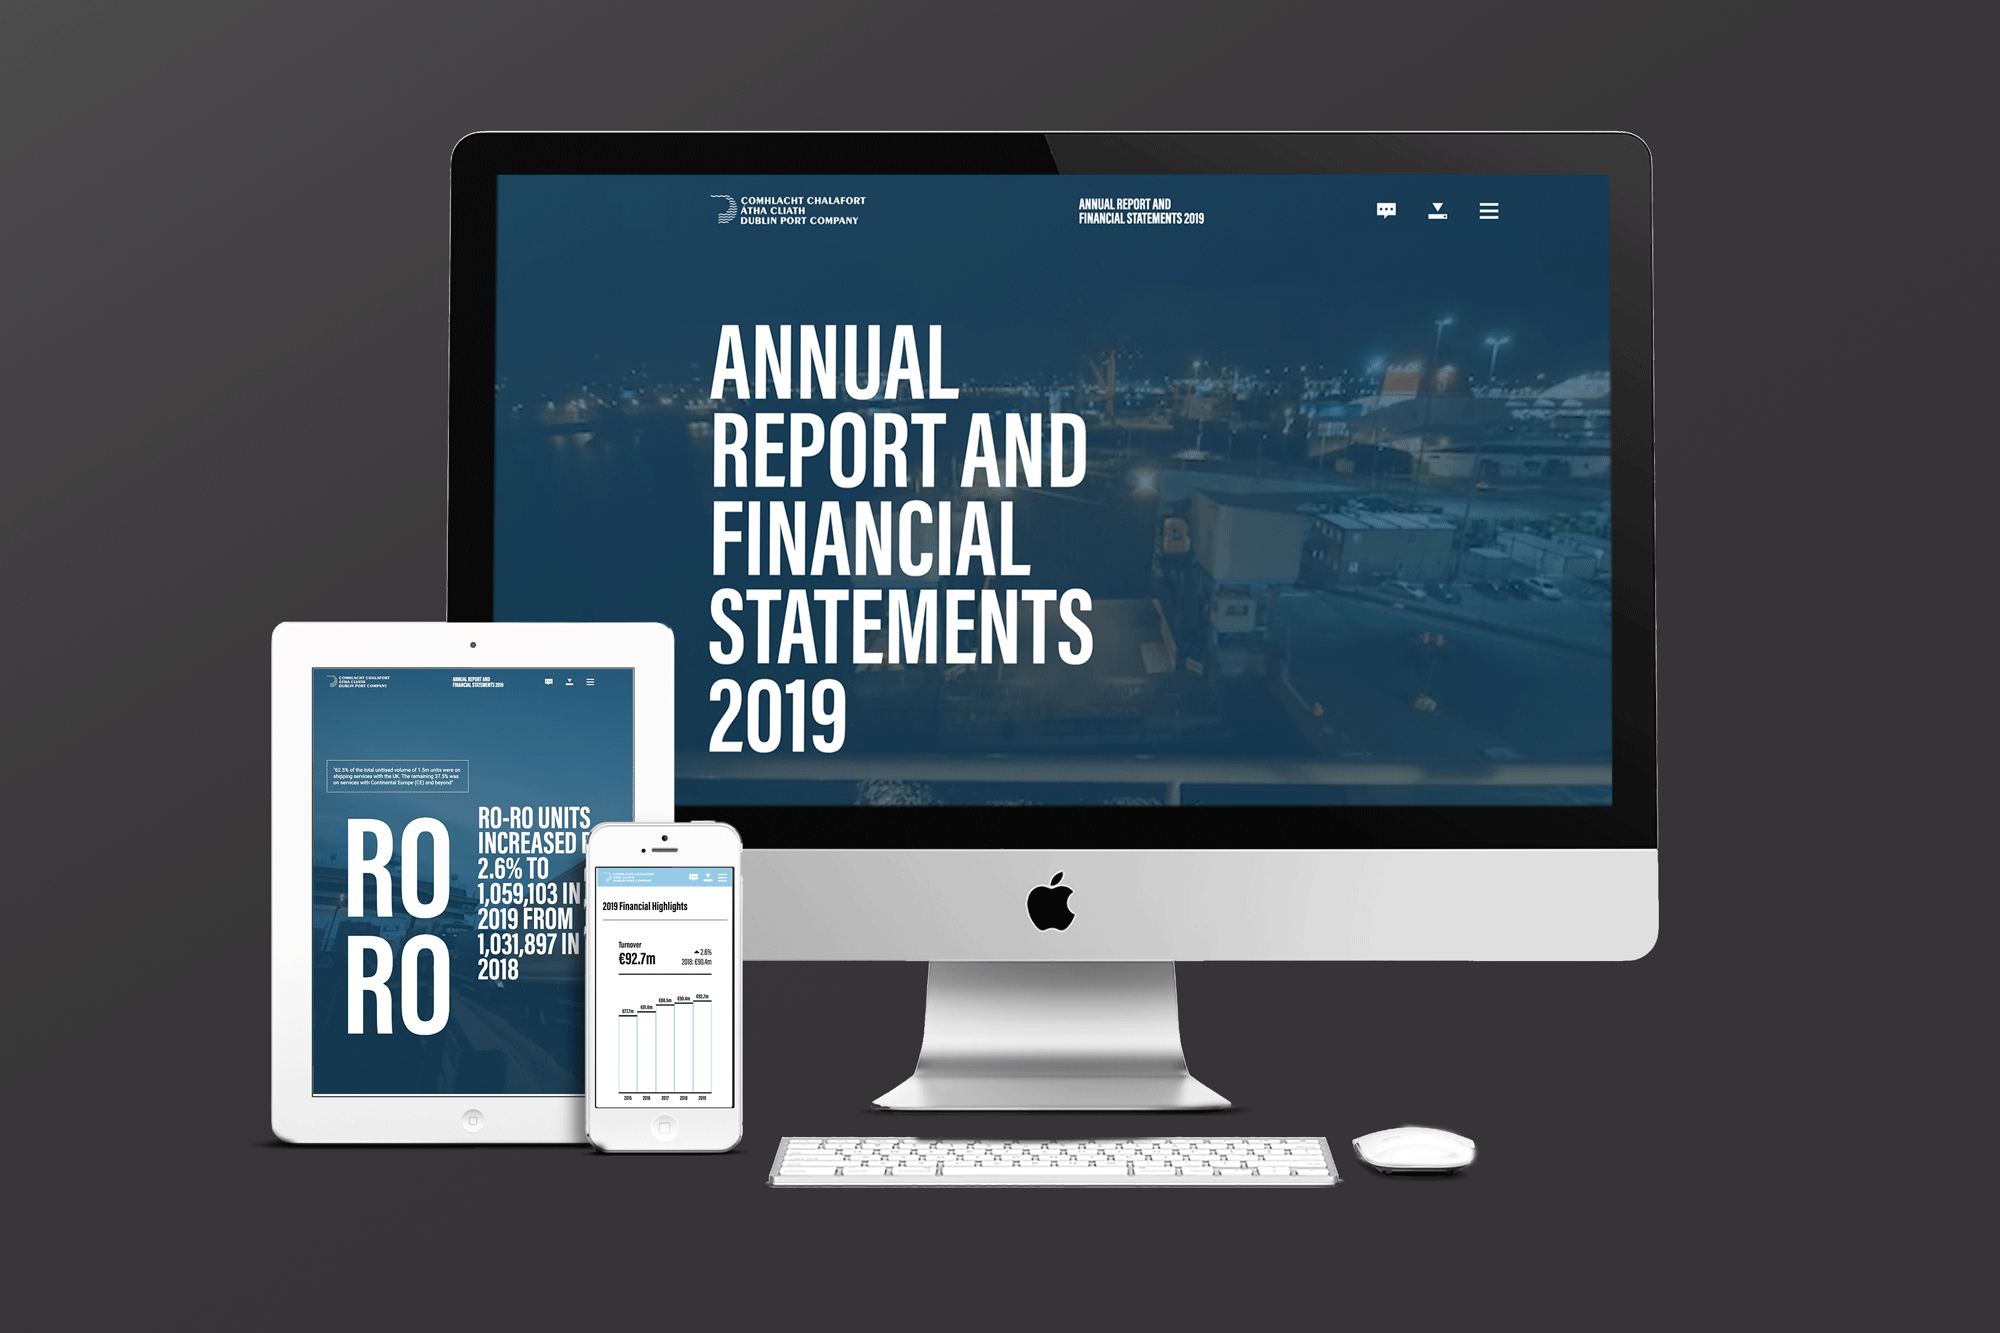 Cover image: Dublin Port Company Annual Report